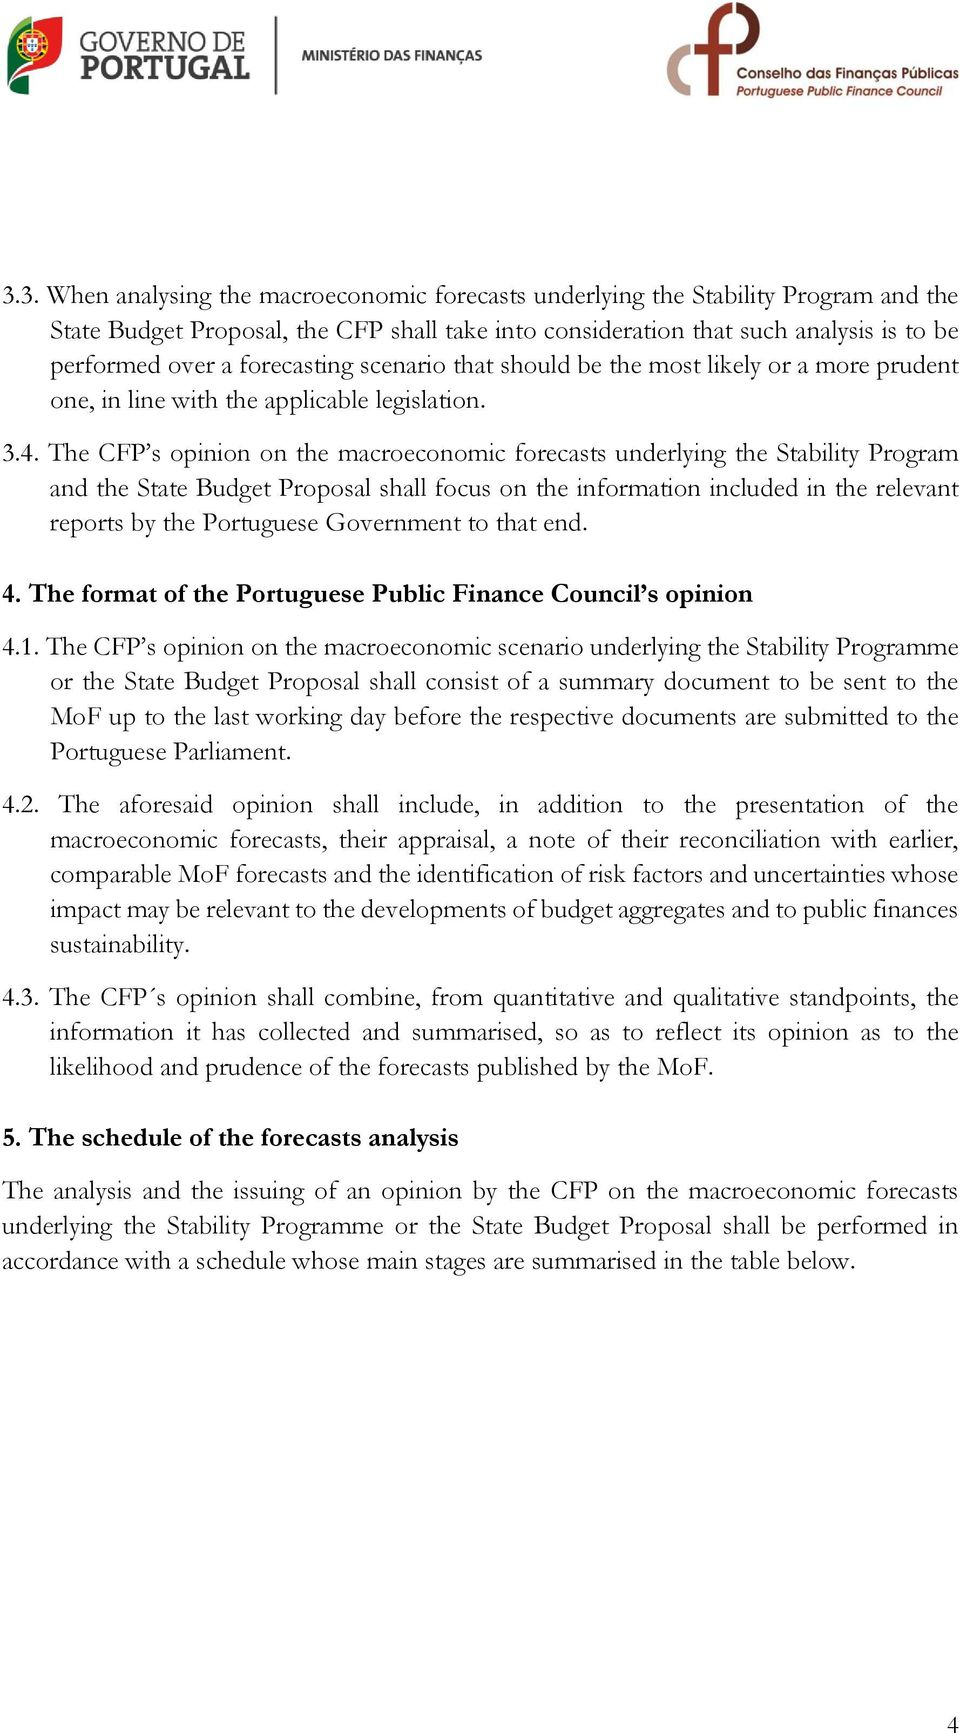 The CFP s opinion on the macroeconomic forecasts underlying the Stability Program and the State Budget Proposal shall focus on the information included in the relevant reports by the Portuguese